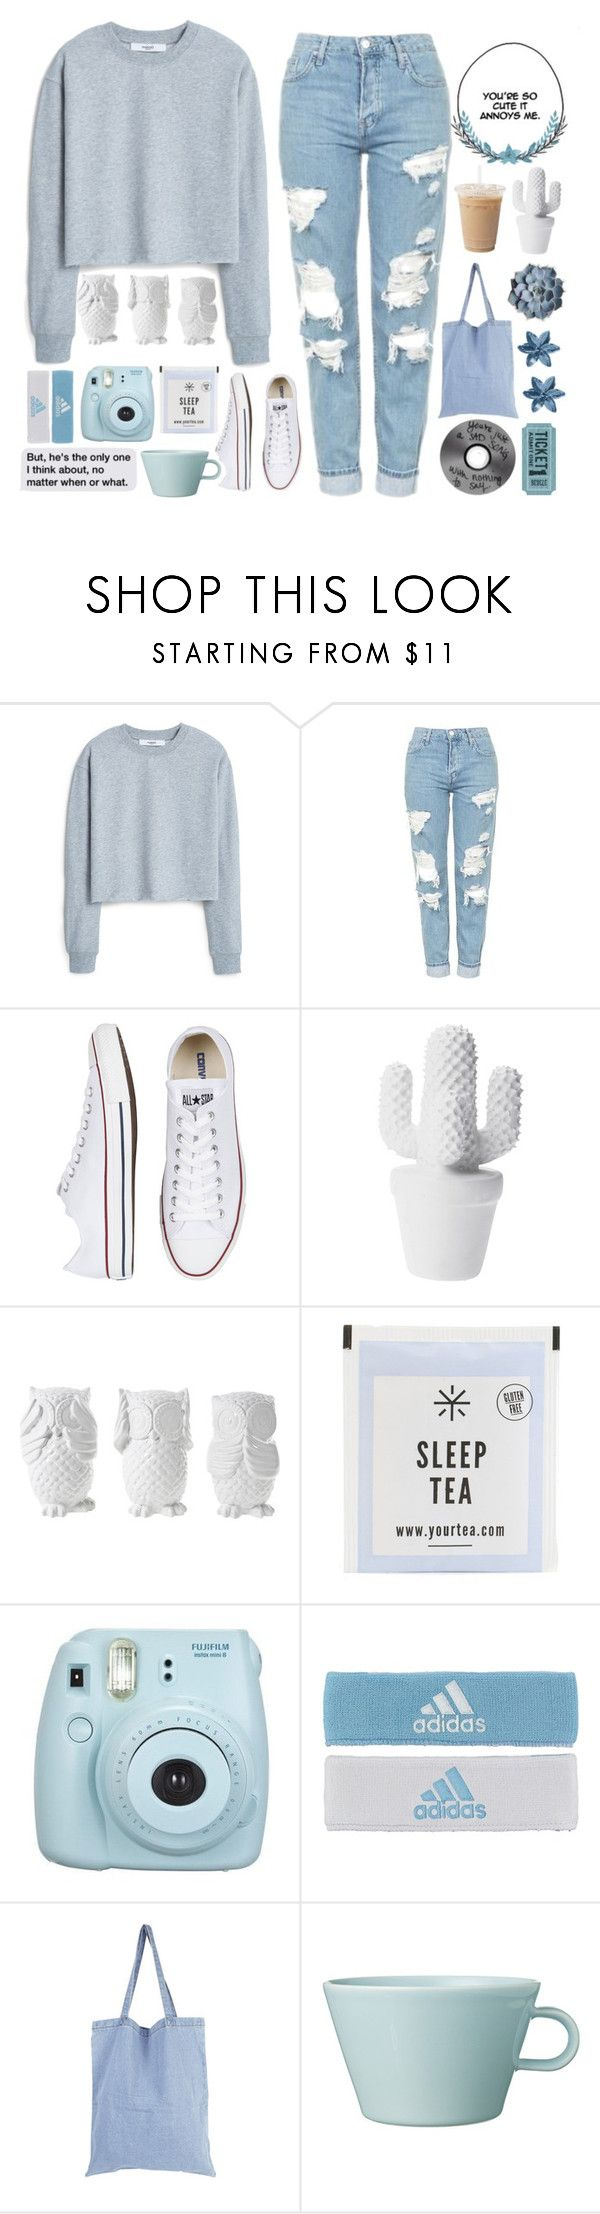 """Can't stop staring at those ocean eyes"" by defying-gravity-xxx ❤ liked on Polyvore featuring MANGO, Topshop, Converse, Design 55, Fujifilm, adidas, StyleNanda, Arabia and calisartsets"